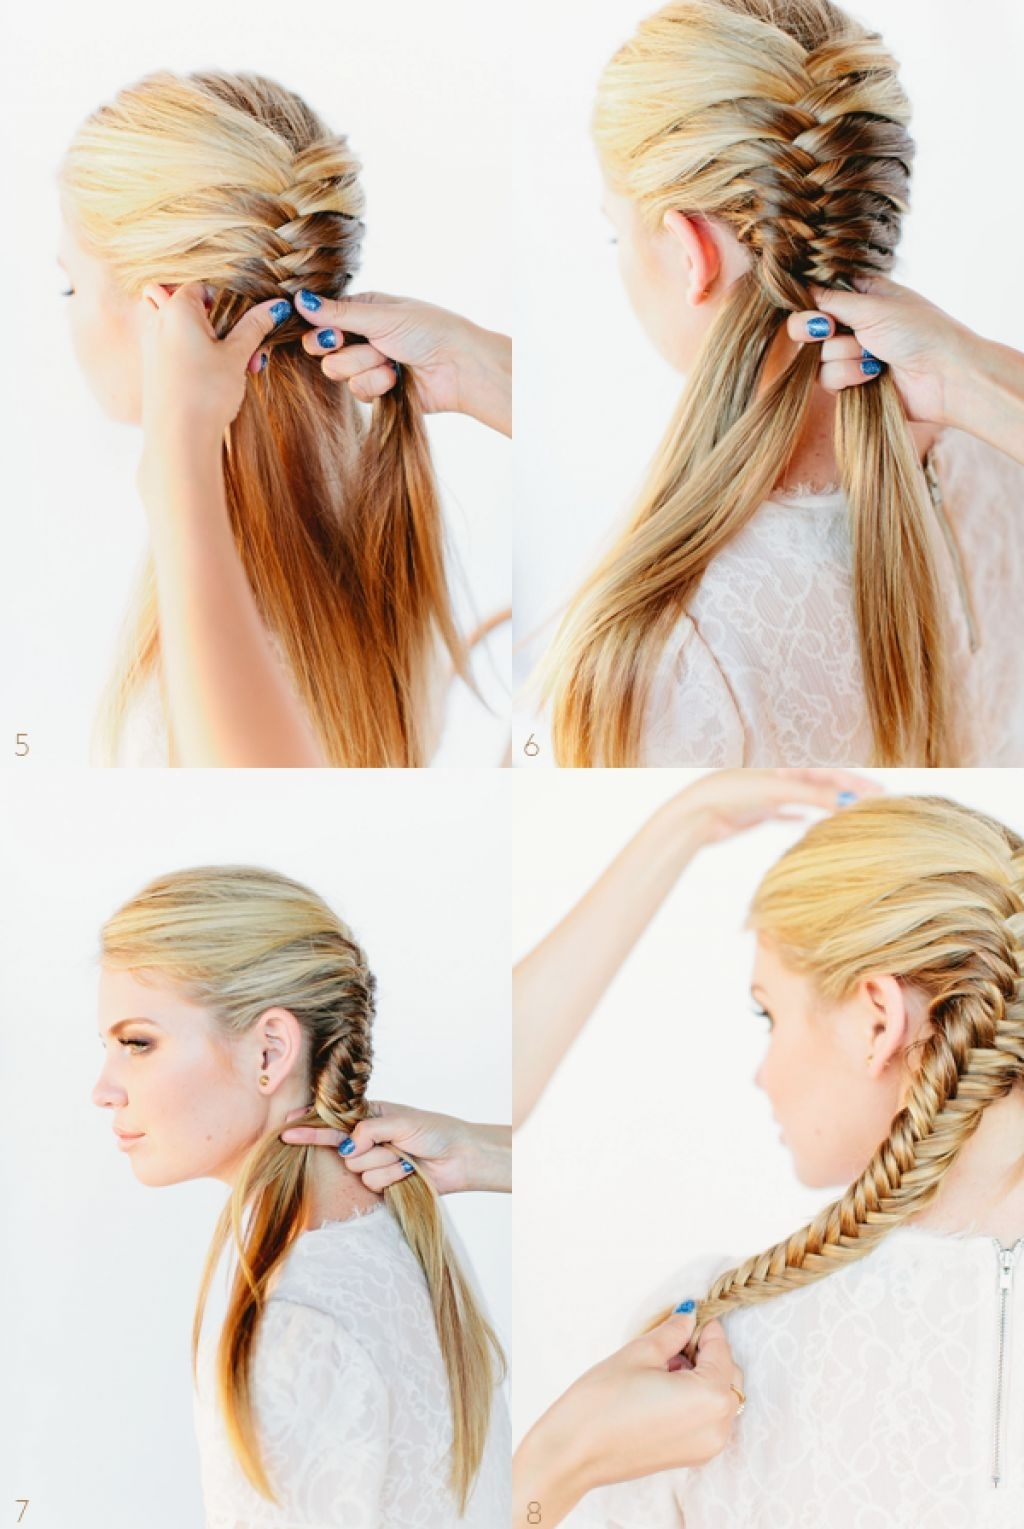 Diy Fishtail Braid Tutorial In Well Liked Fishtail Braid Wedding Hairstyles (Gallery 13 of 15)